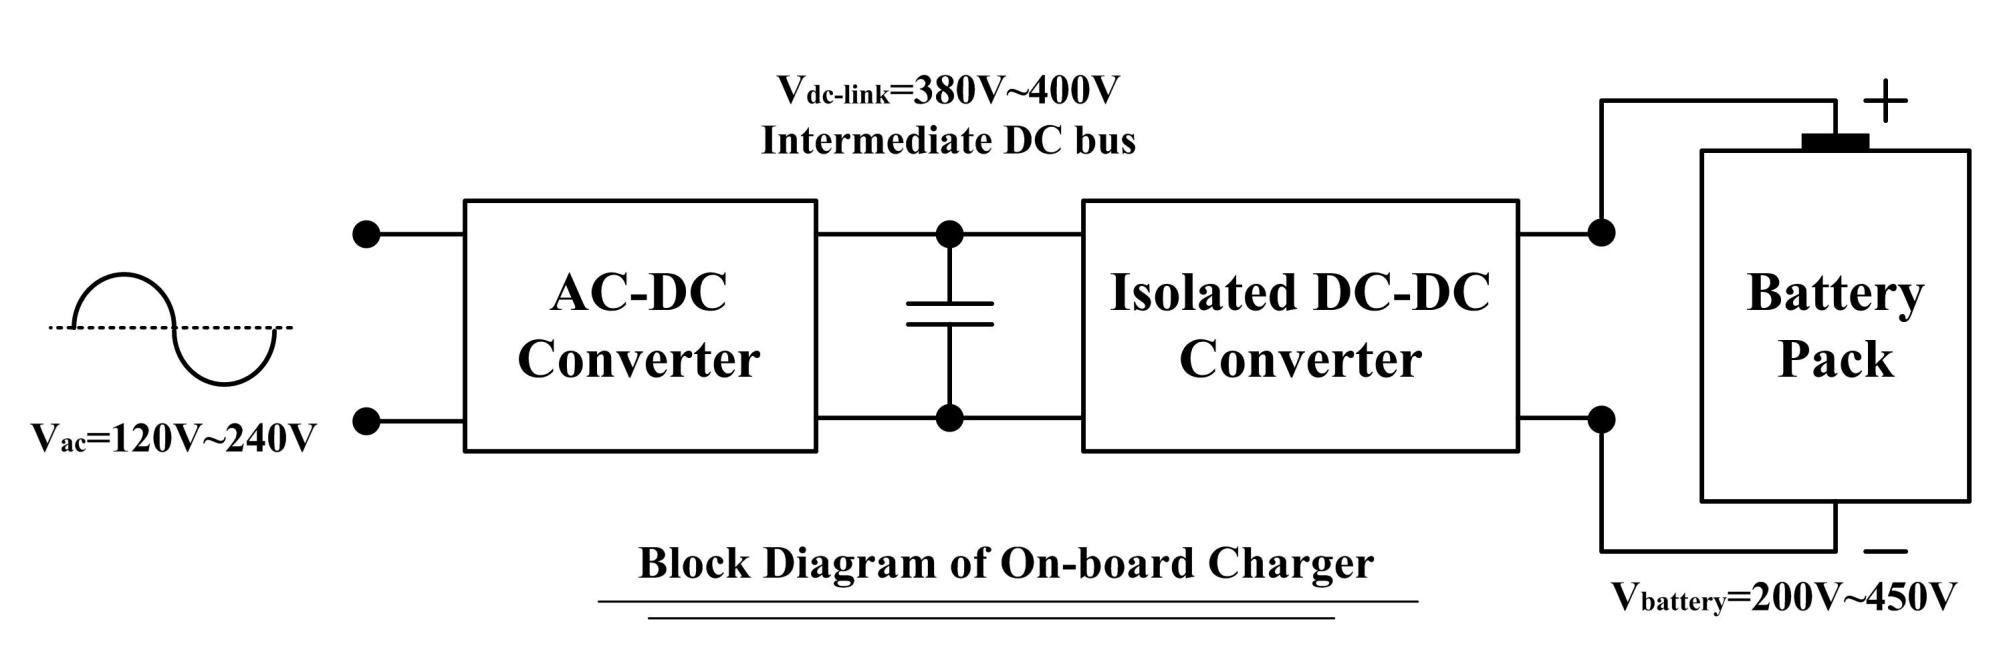 hight resolution of 1 a typical block diagram of on board charger for electric vehicle application